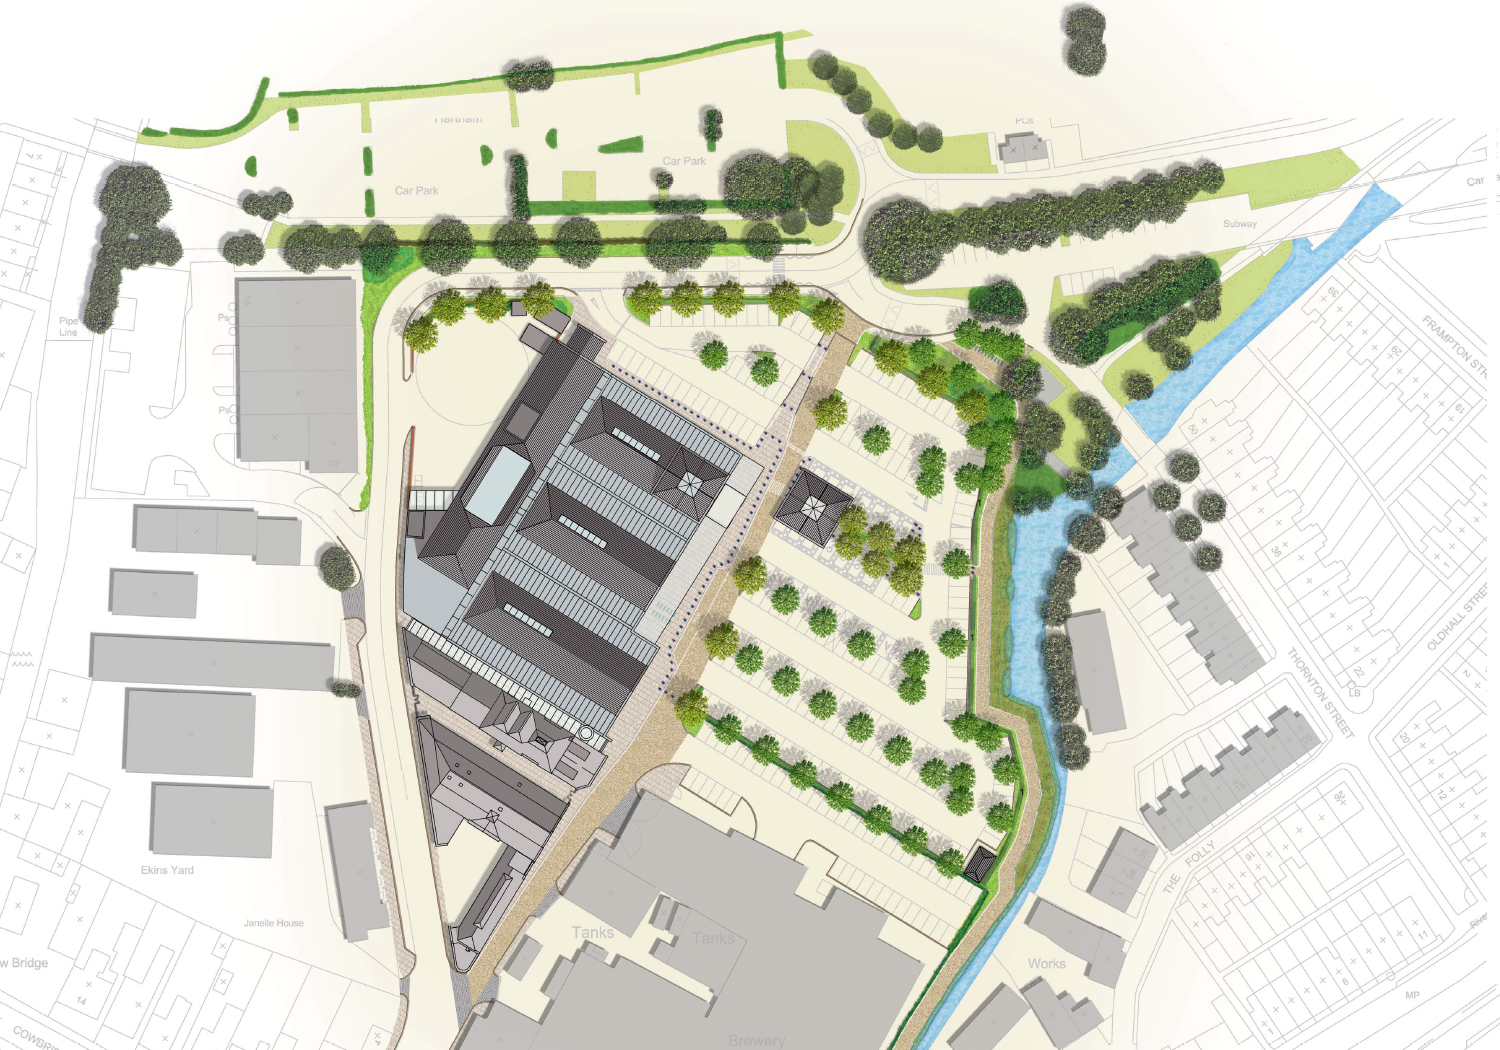 Projects-CommInd-SainsHereford-Masterplan-1500x1050